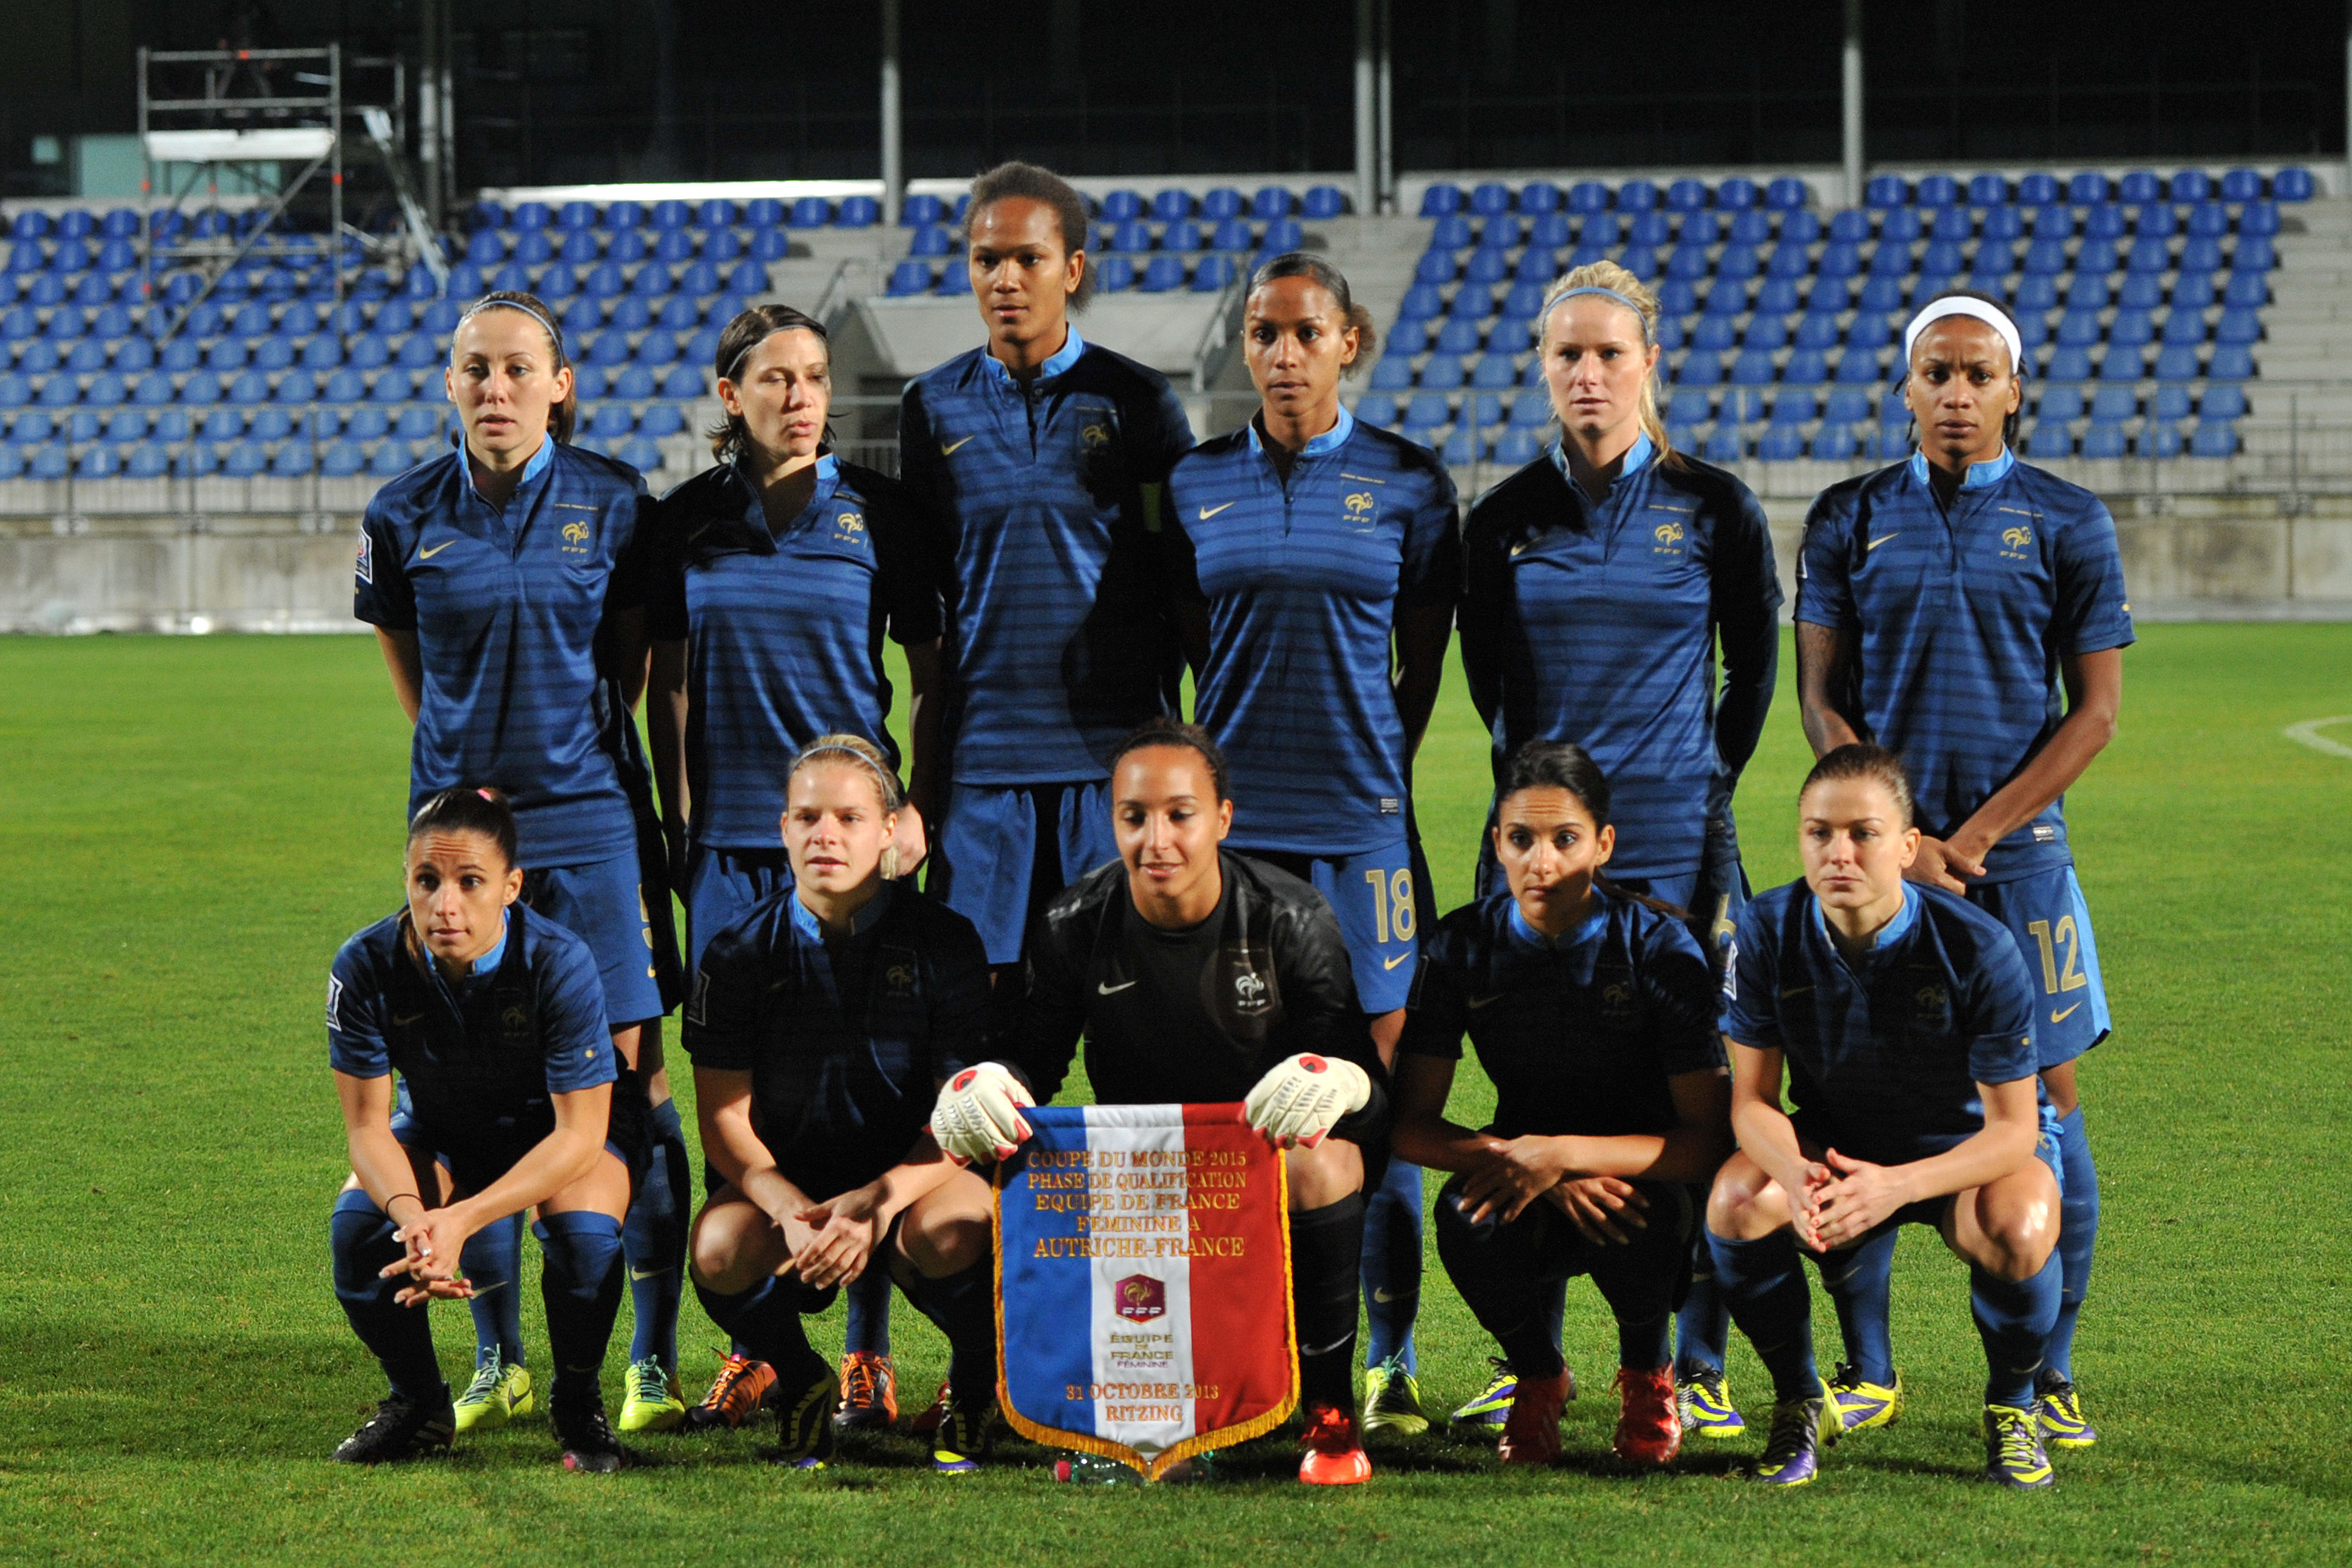 National women's soccer team position: France Women S National Football Team Simple English Wikipedia The Free Encyclopedia